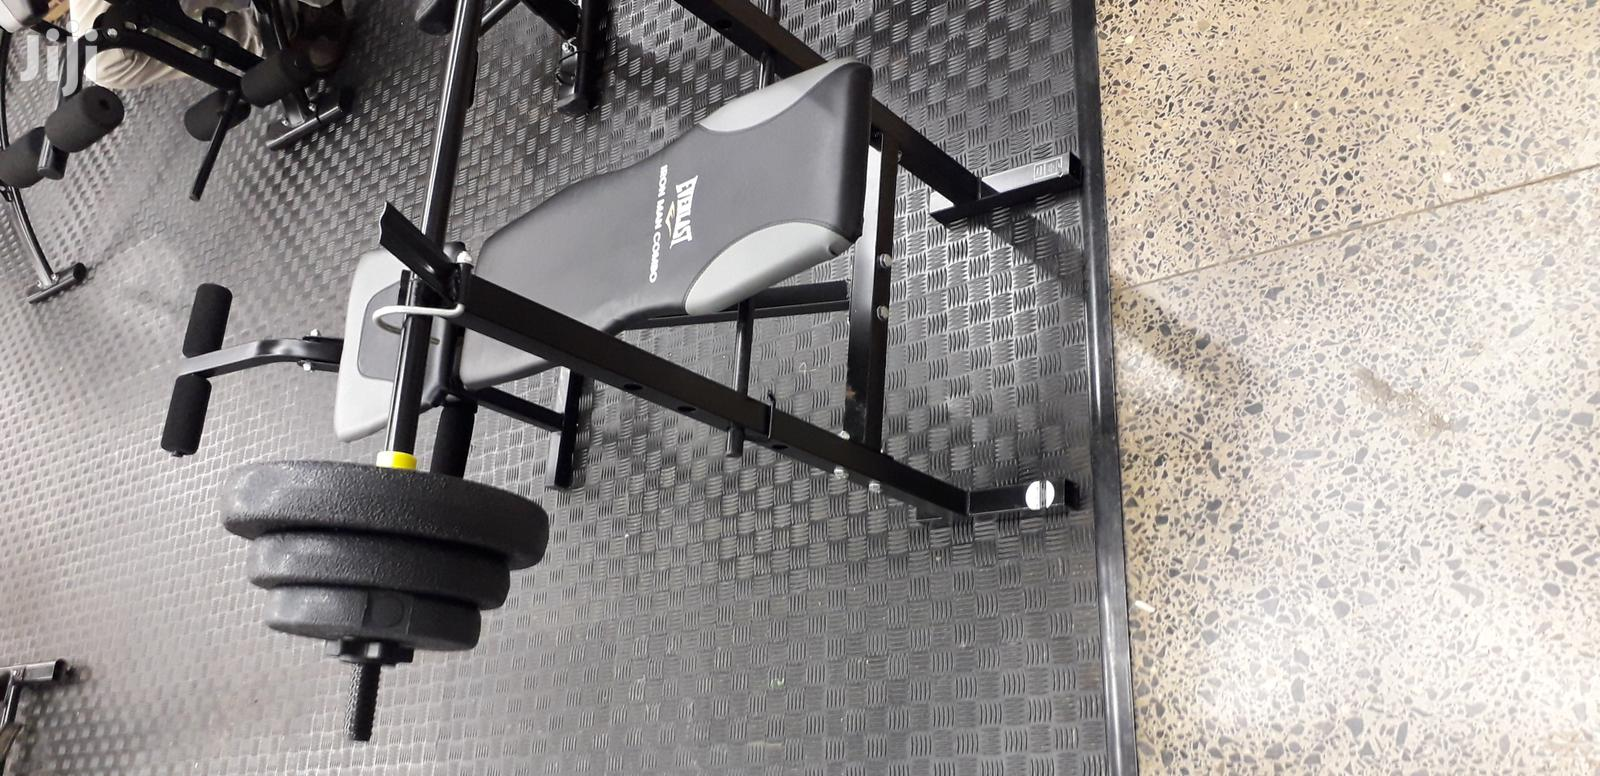 Archive: Everlast Gym Benches